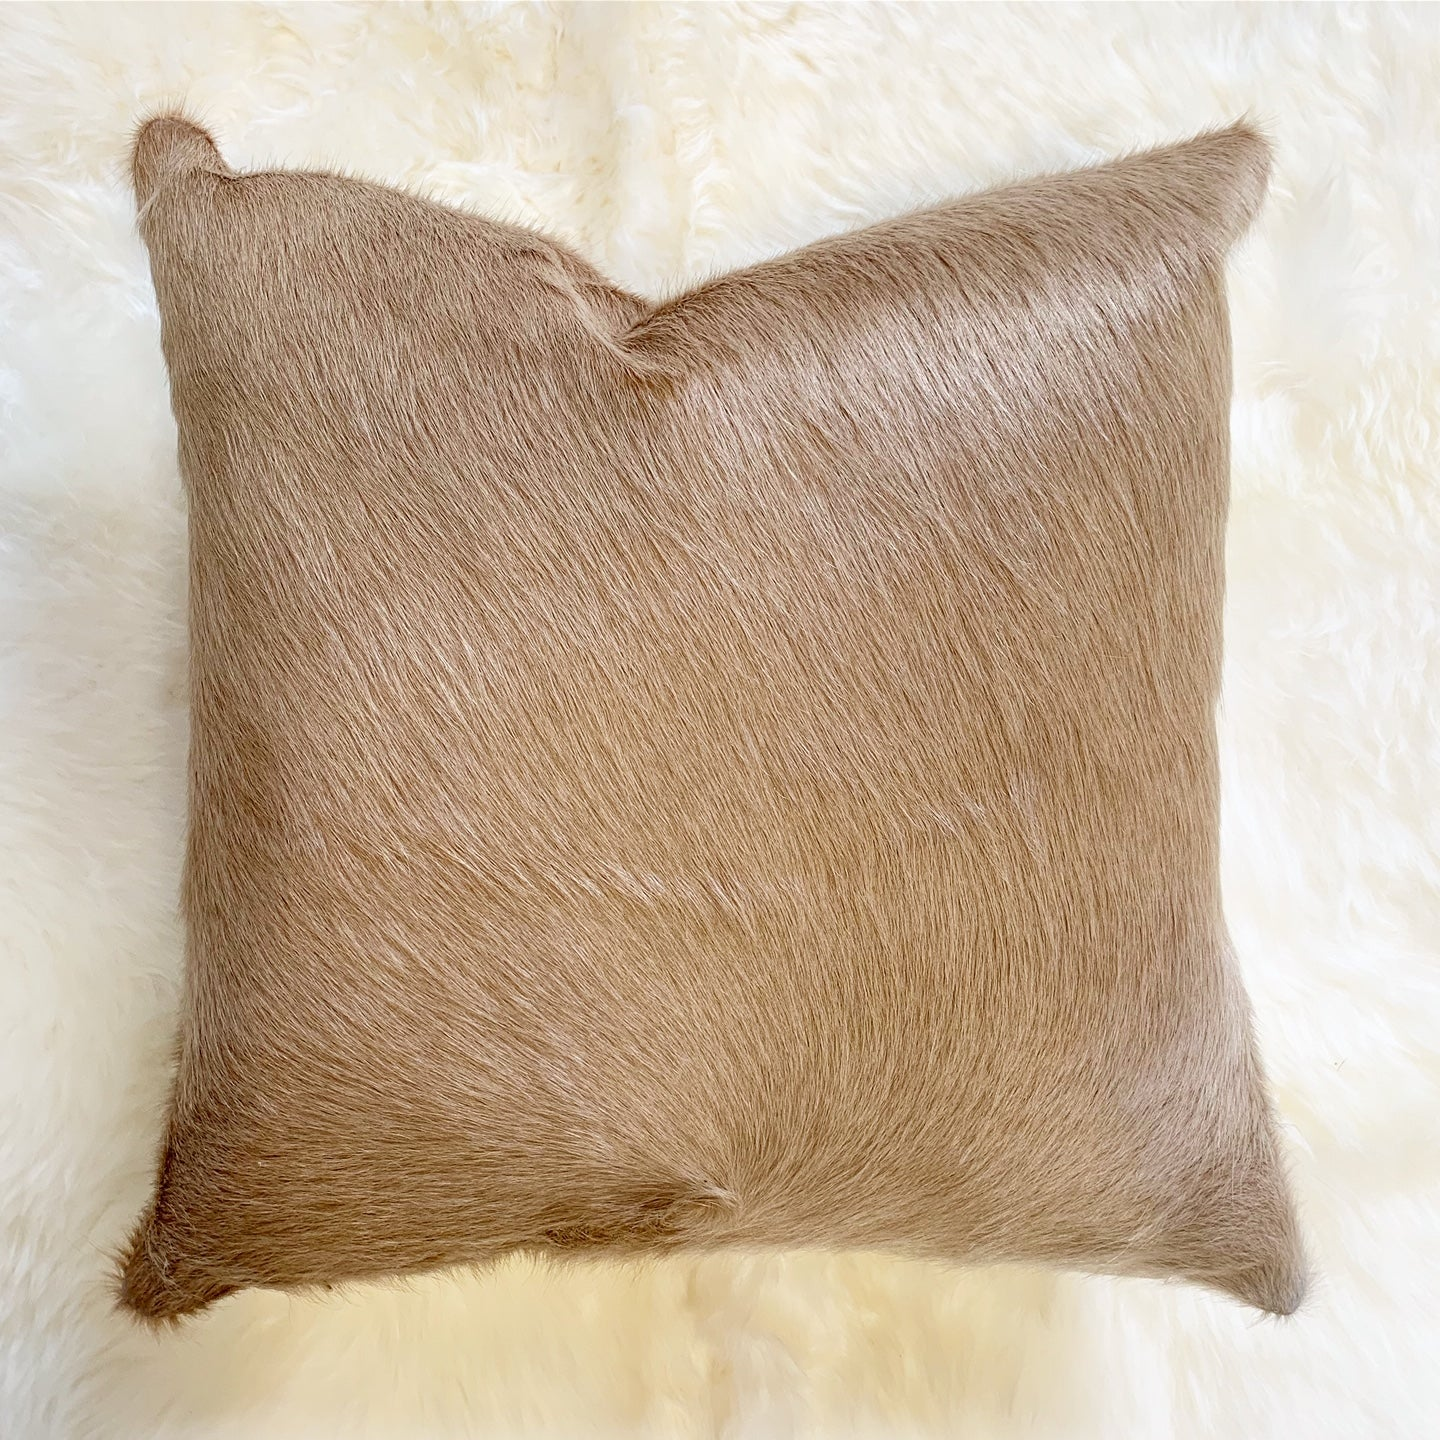 "Palomino Cowhide Pillow, 18"" - FORSYTH"